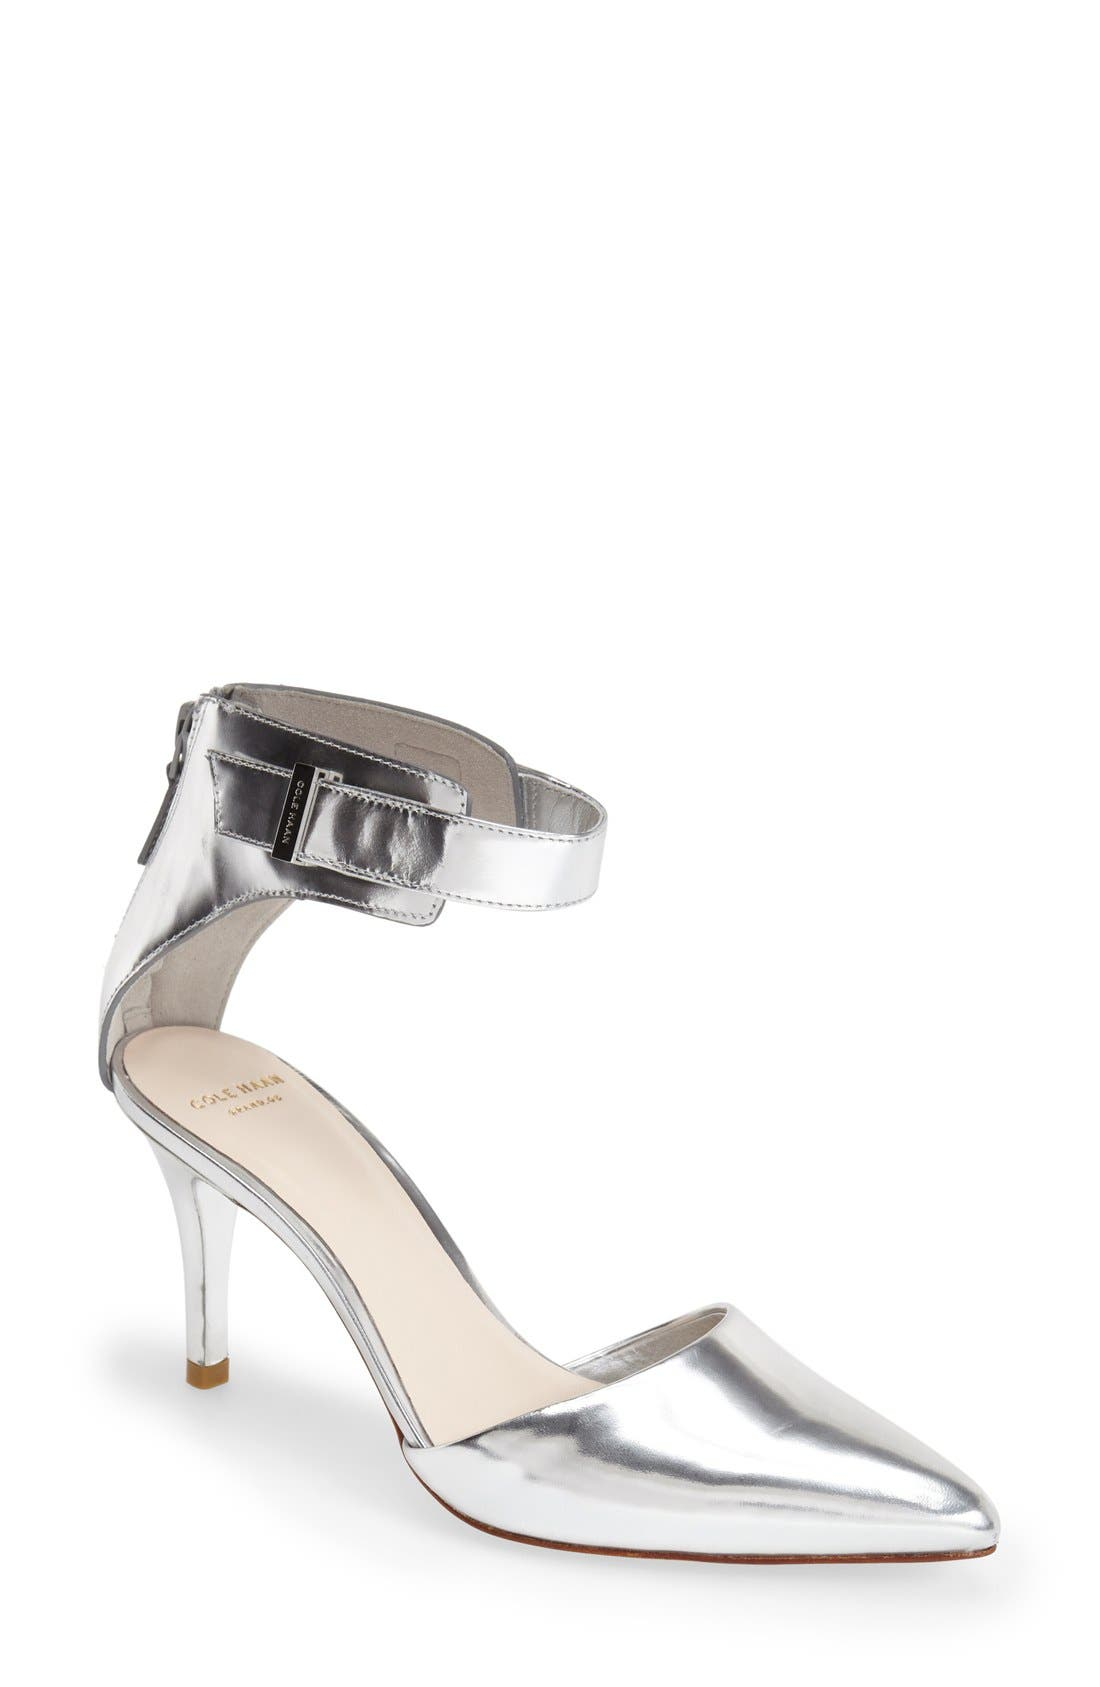 Alternate Image 1 Selected - Cole Haan 'Highline' Ankle Strap Pump (Women)